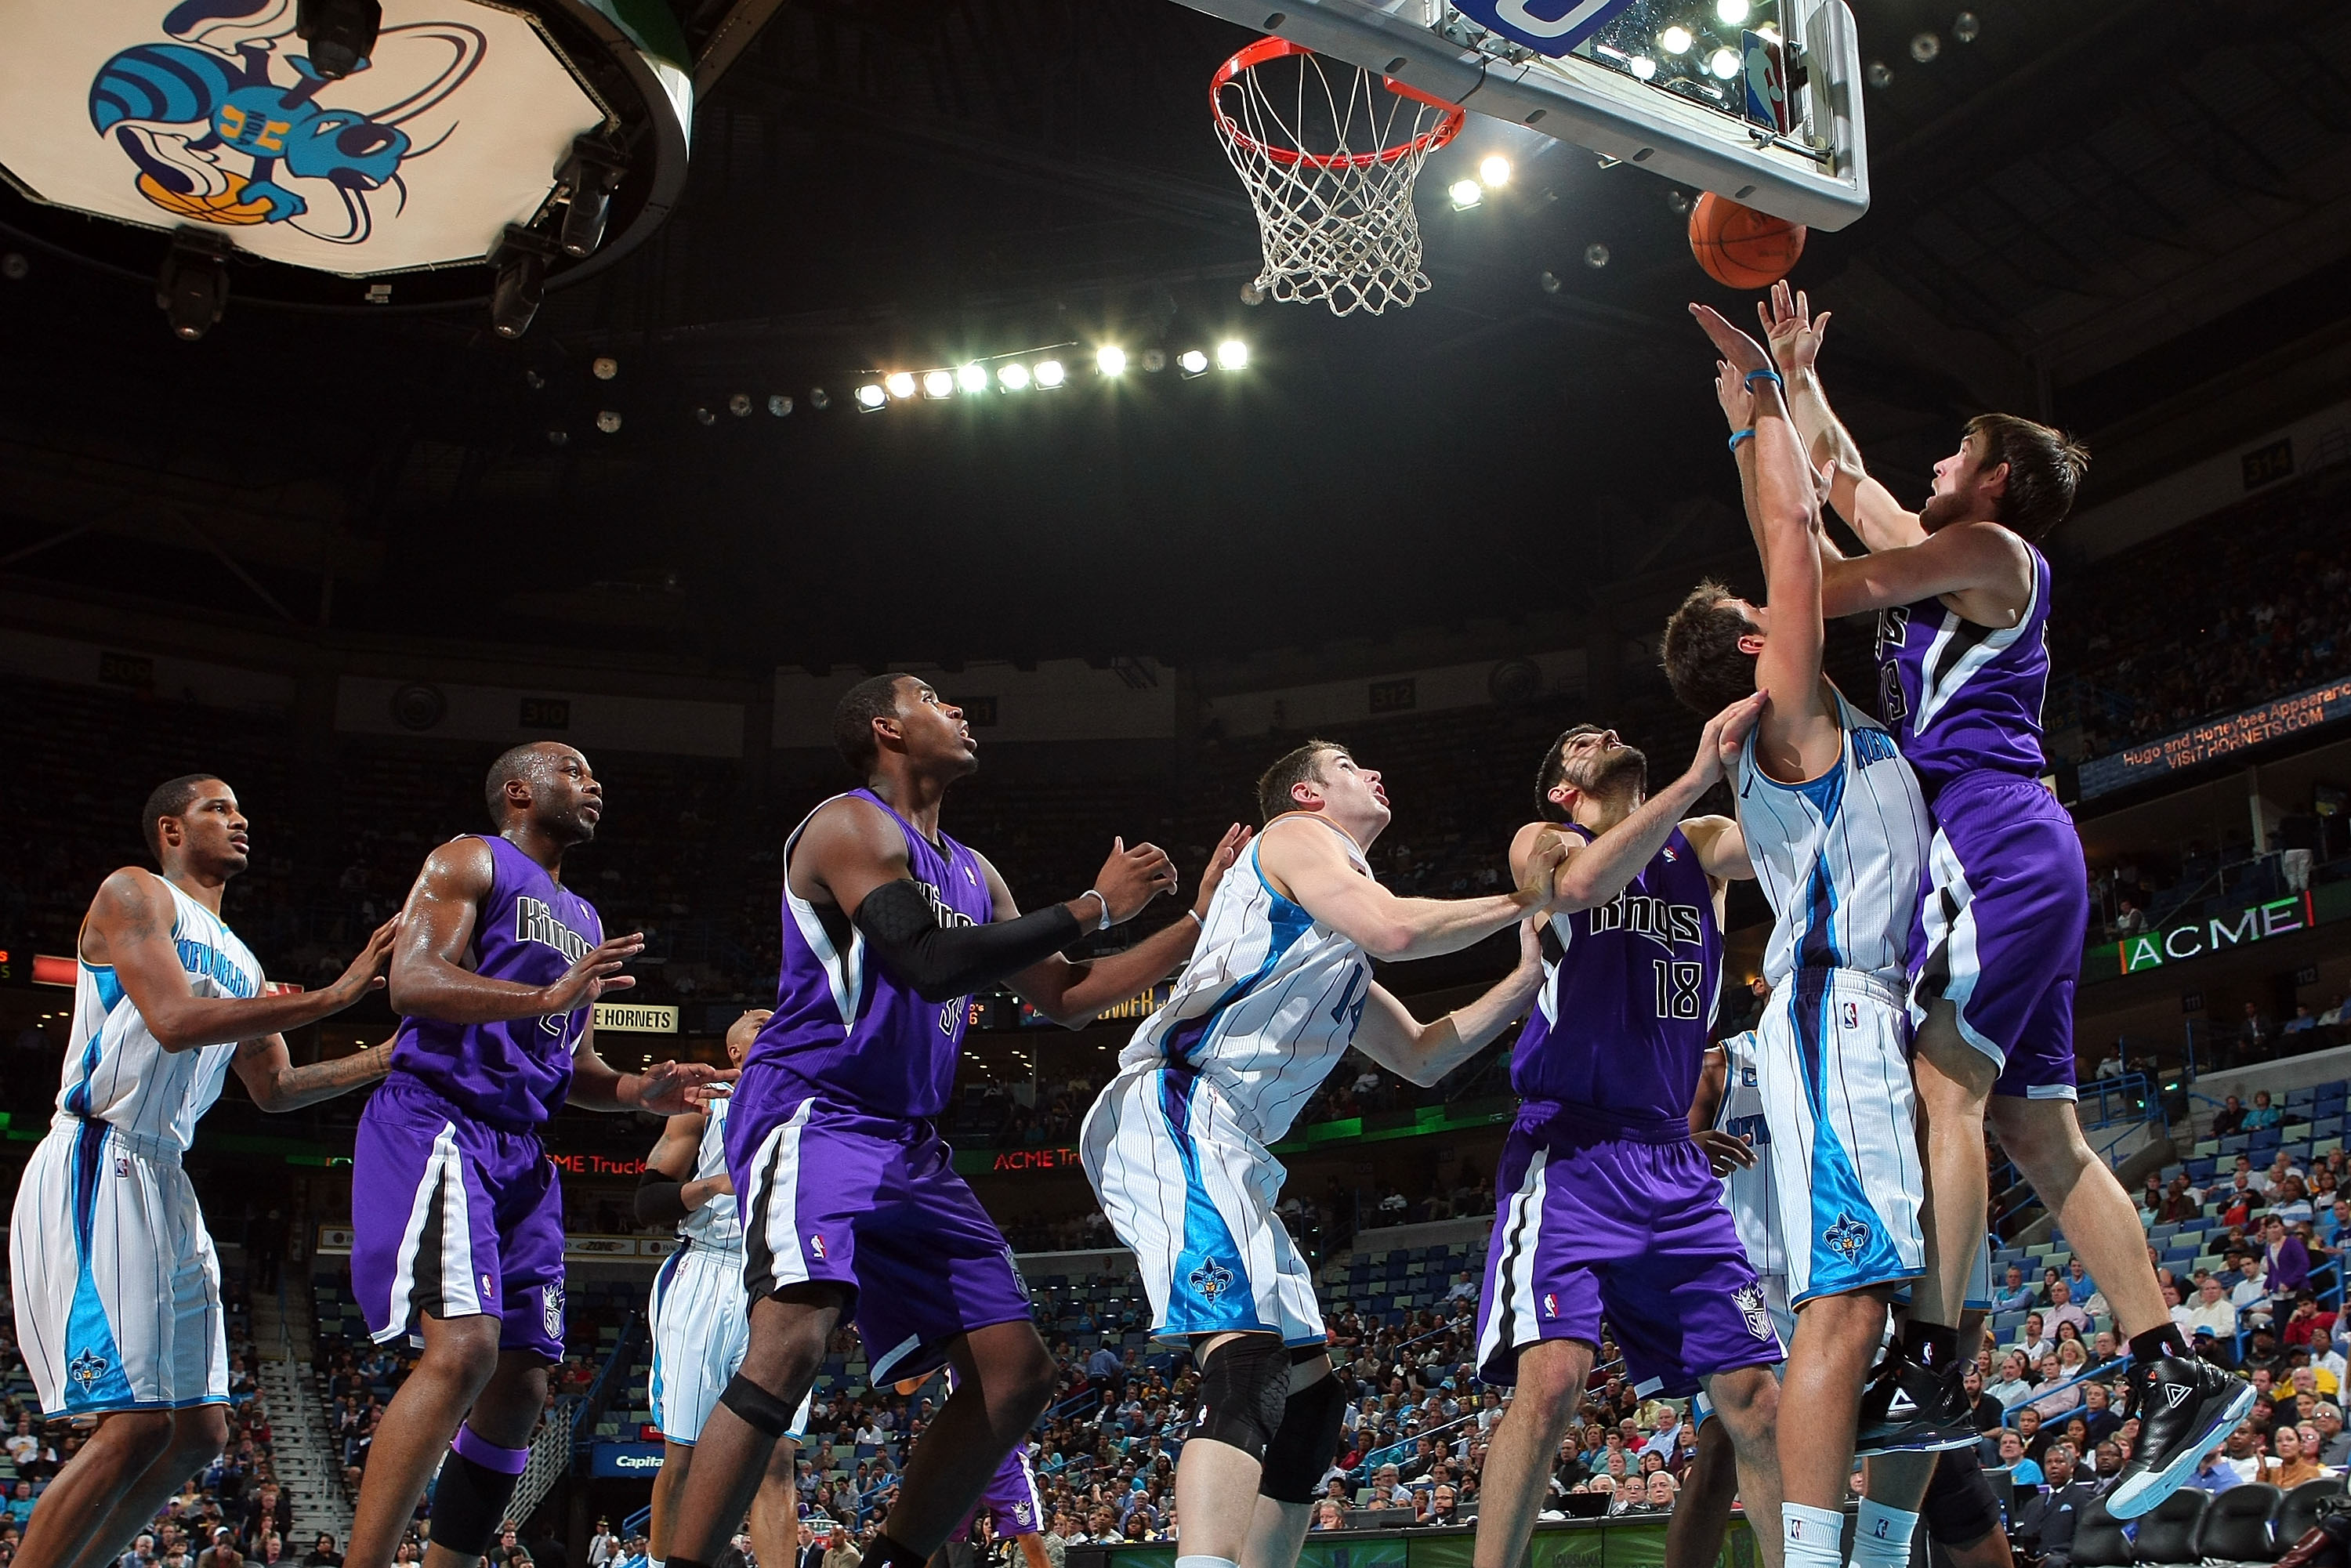 NEW ORLEANS, LA - DECEMBER 15:  Beno Udrih #19 of the Sacramento Kings shoots the ball over Marco Belinelli #8 of the New Orleans Hornets  at the New Orleans Arena on December 15, 2010 in New Orleans, Louisiana.  The Hornets defeated the Kings 94-91.  NOT